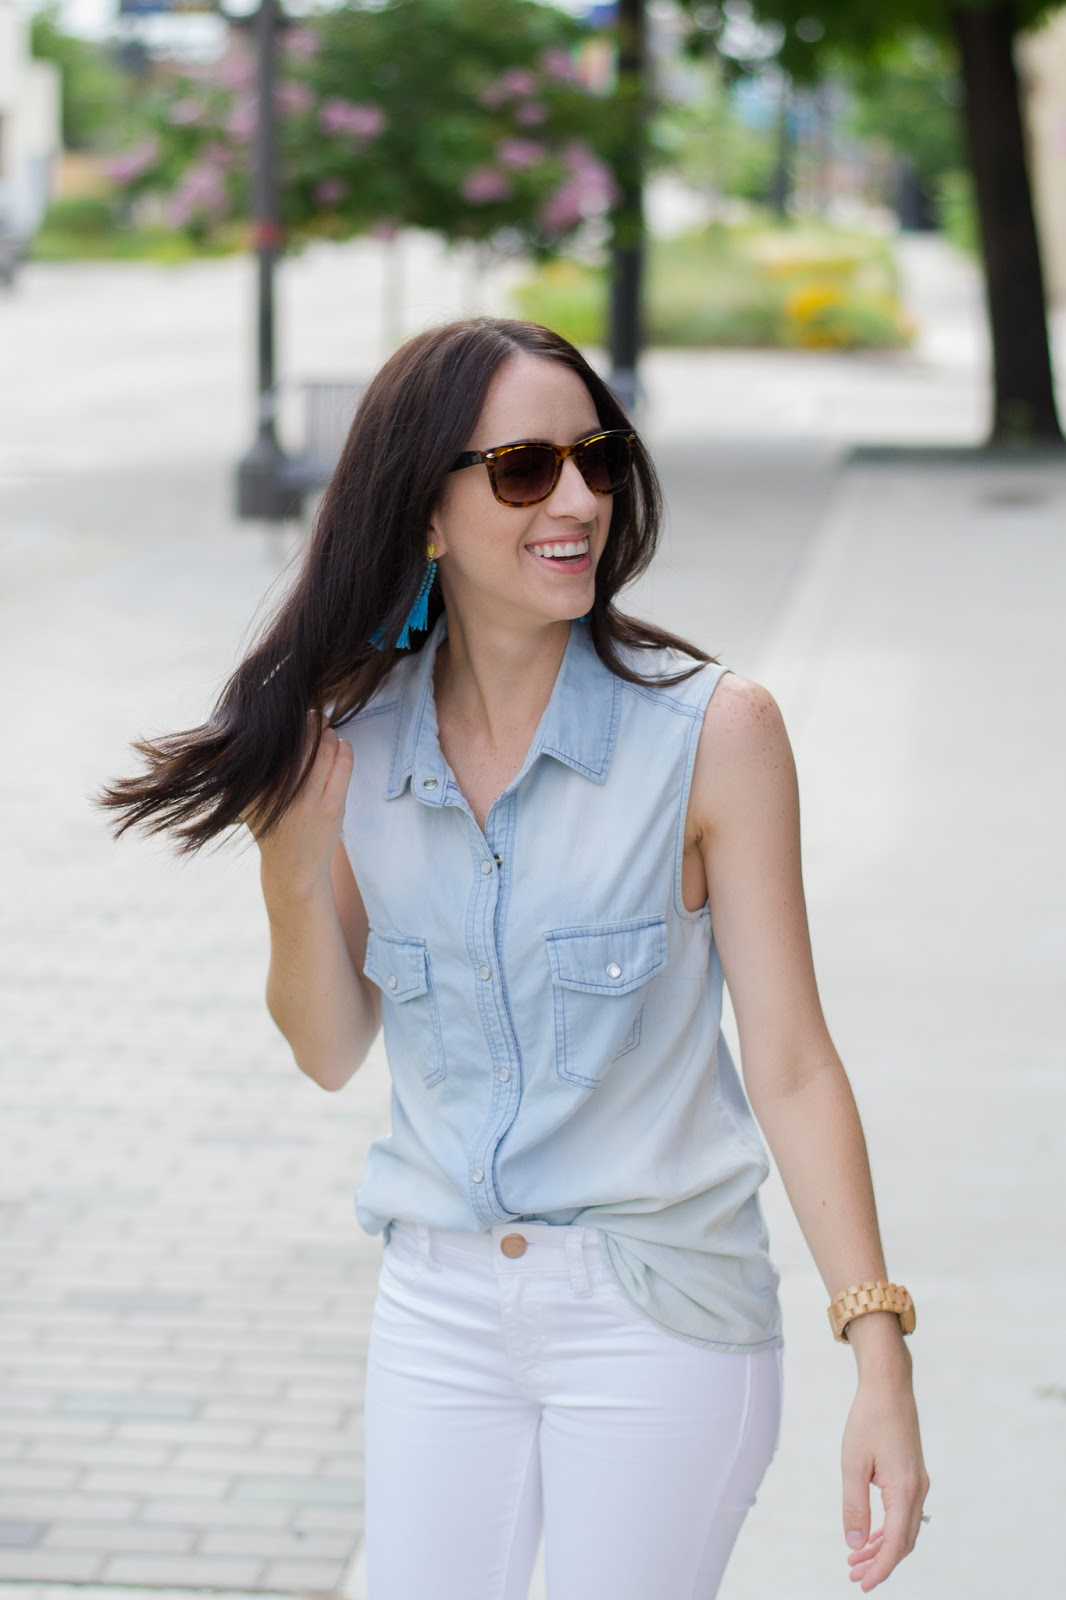 Pairing colorful tassel earrings with basic chambray top for a casual day look.